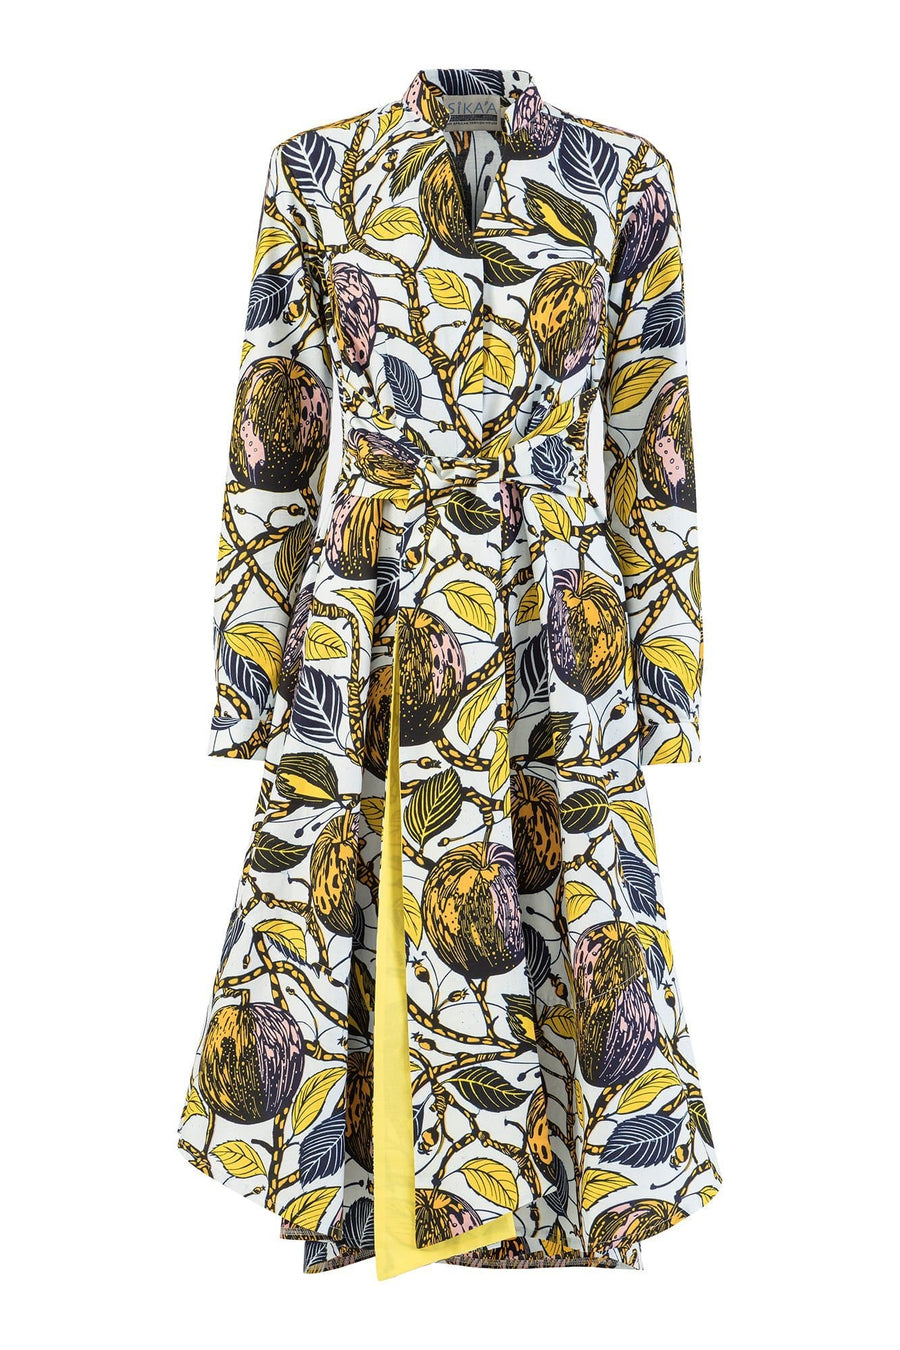 Honorine African Print Long Sleeves Tie Waist Udara Shirt Dress